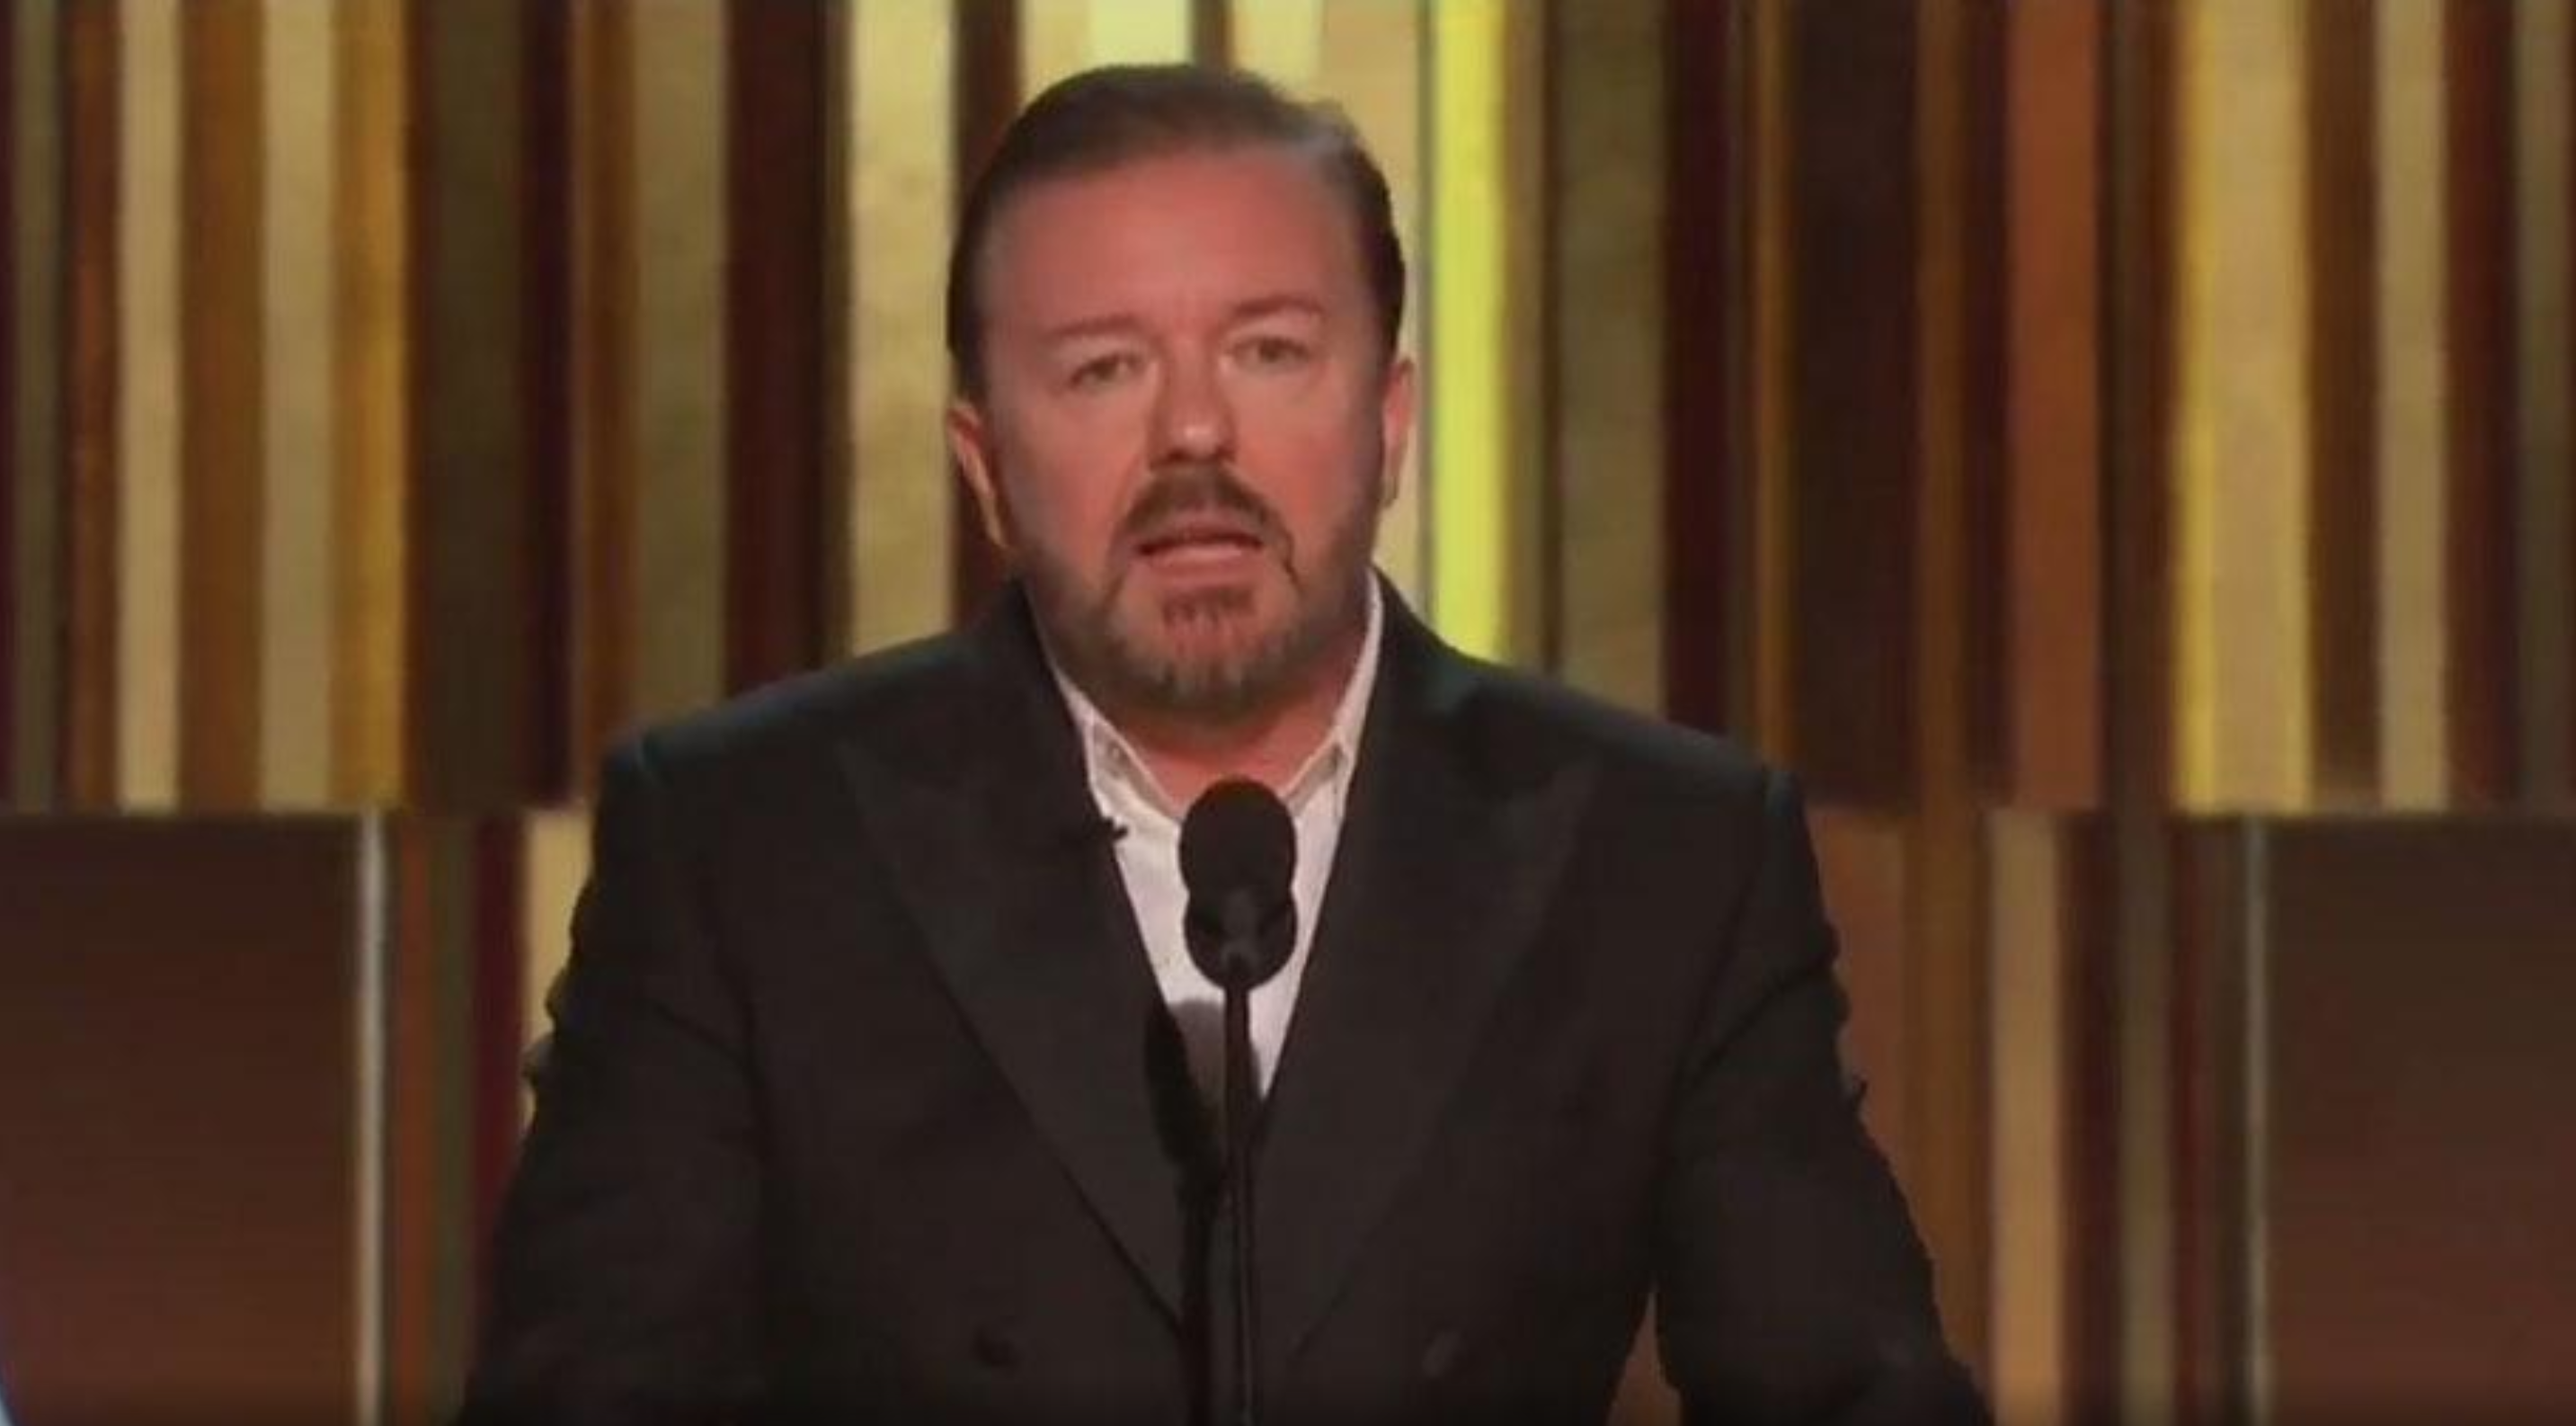 Rep. Crenshaw applauds Ricky Gervais' takedown of Hollywood elites: 'He has the support of the people'